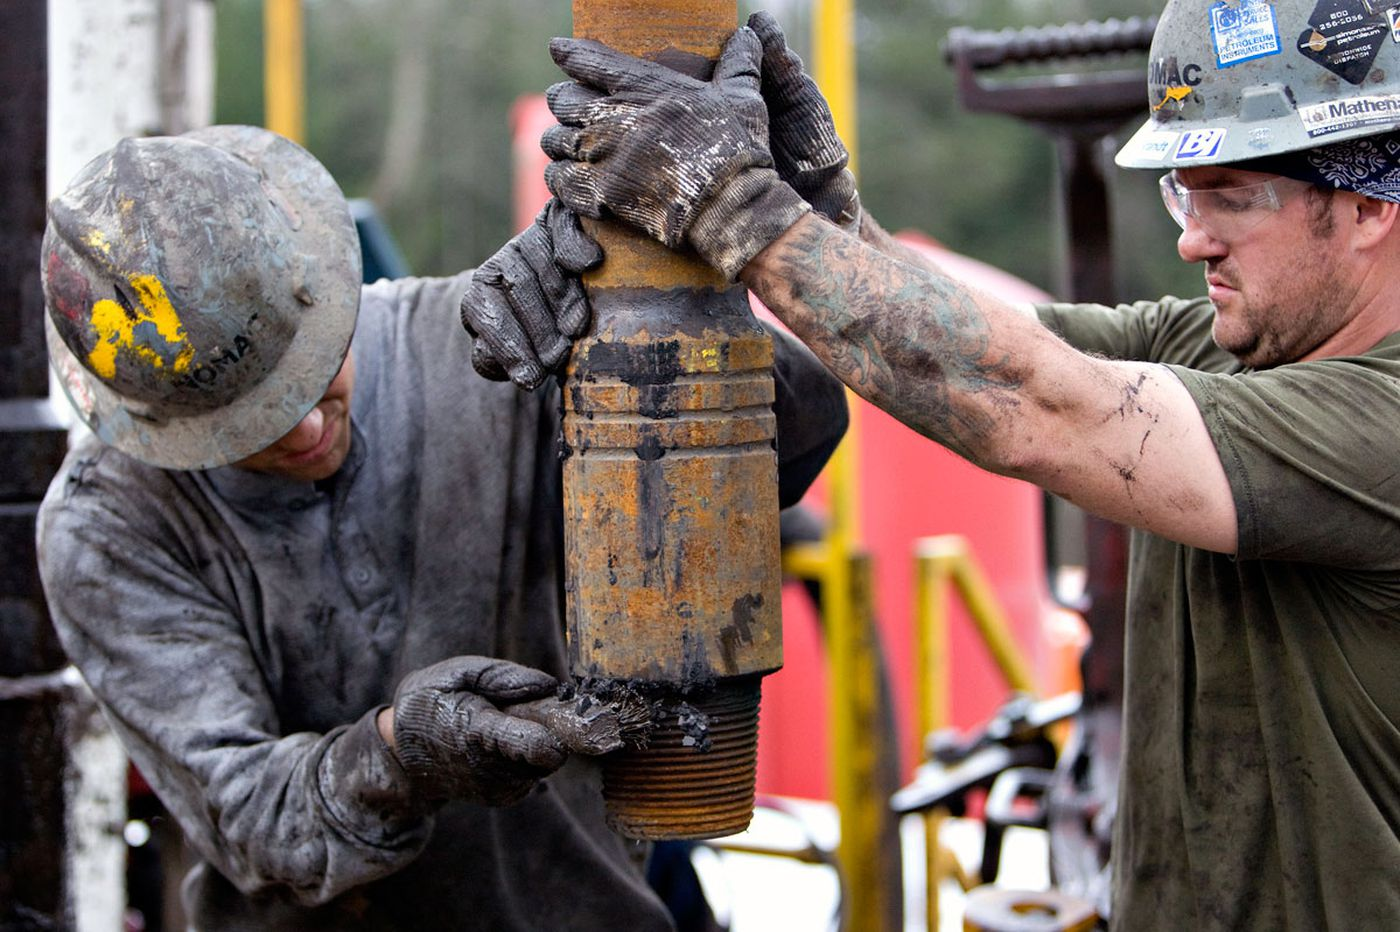 Law unfairly gave shale drillers 'special' treatment, Pa. Supreme Court rules